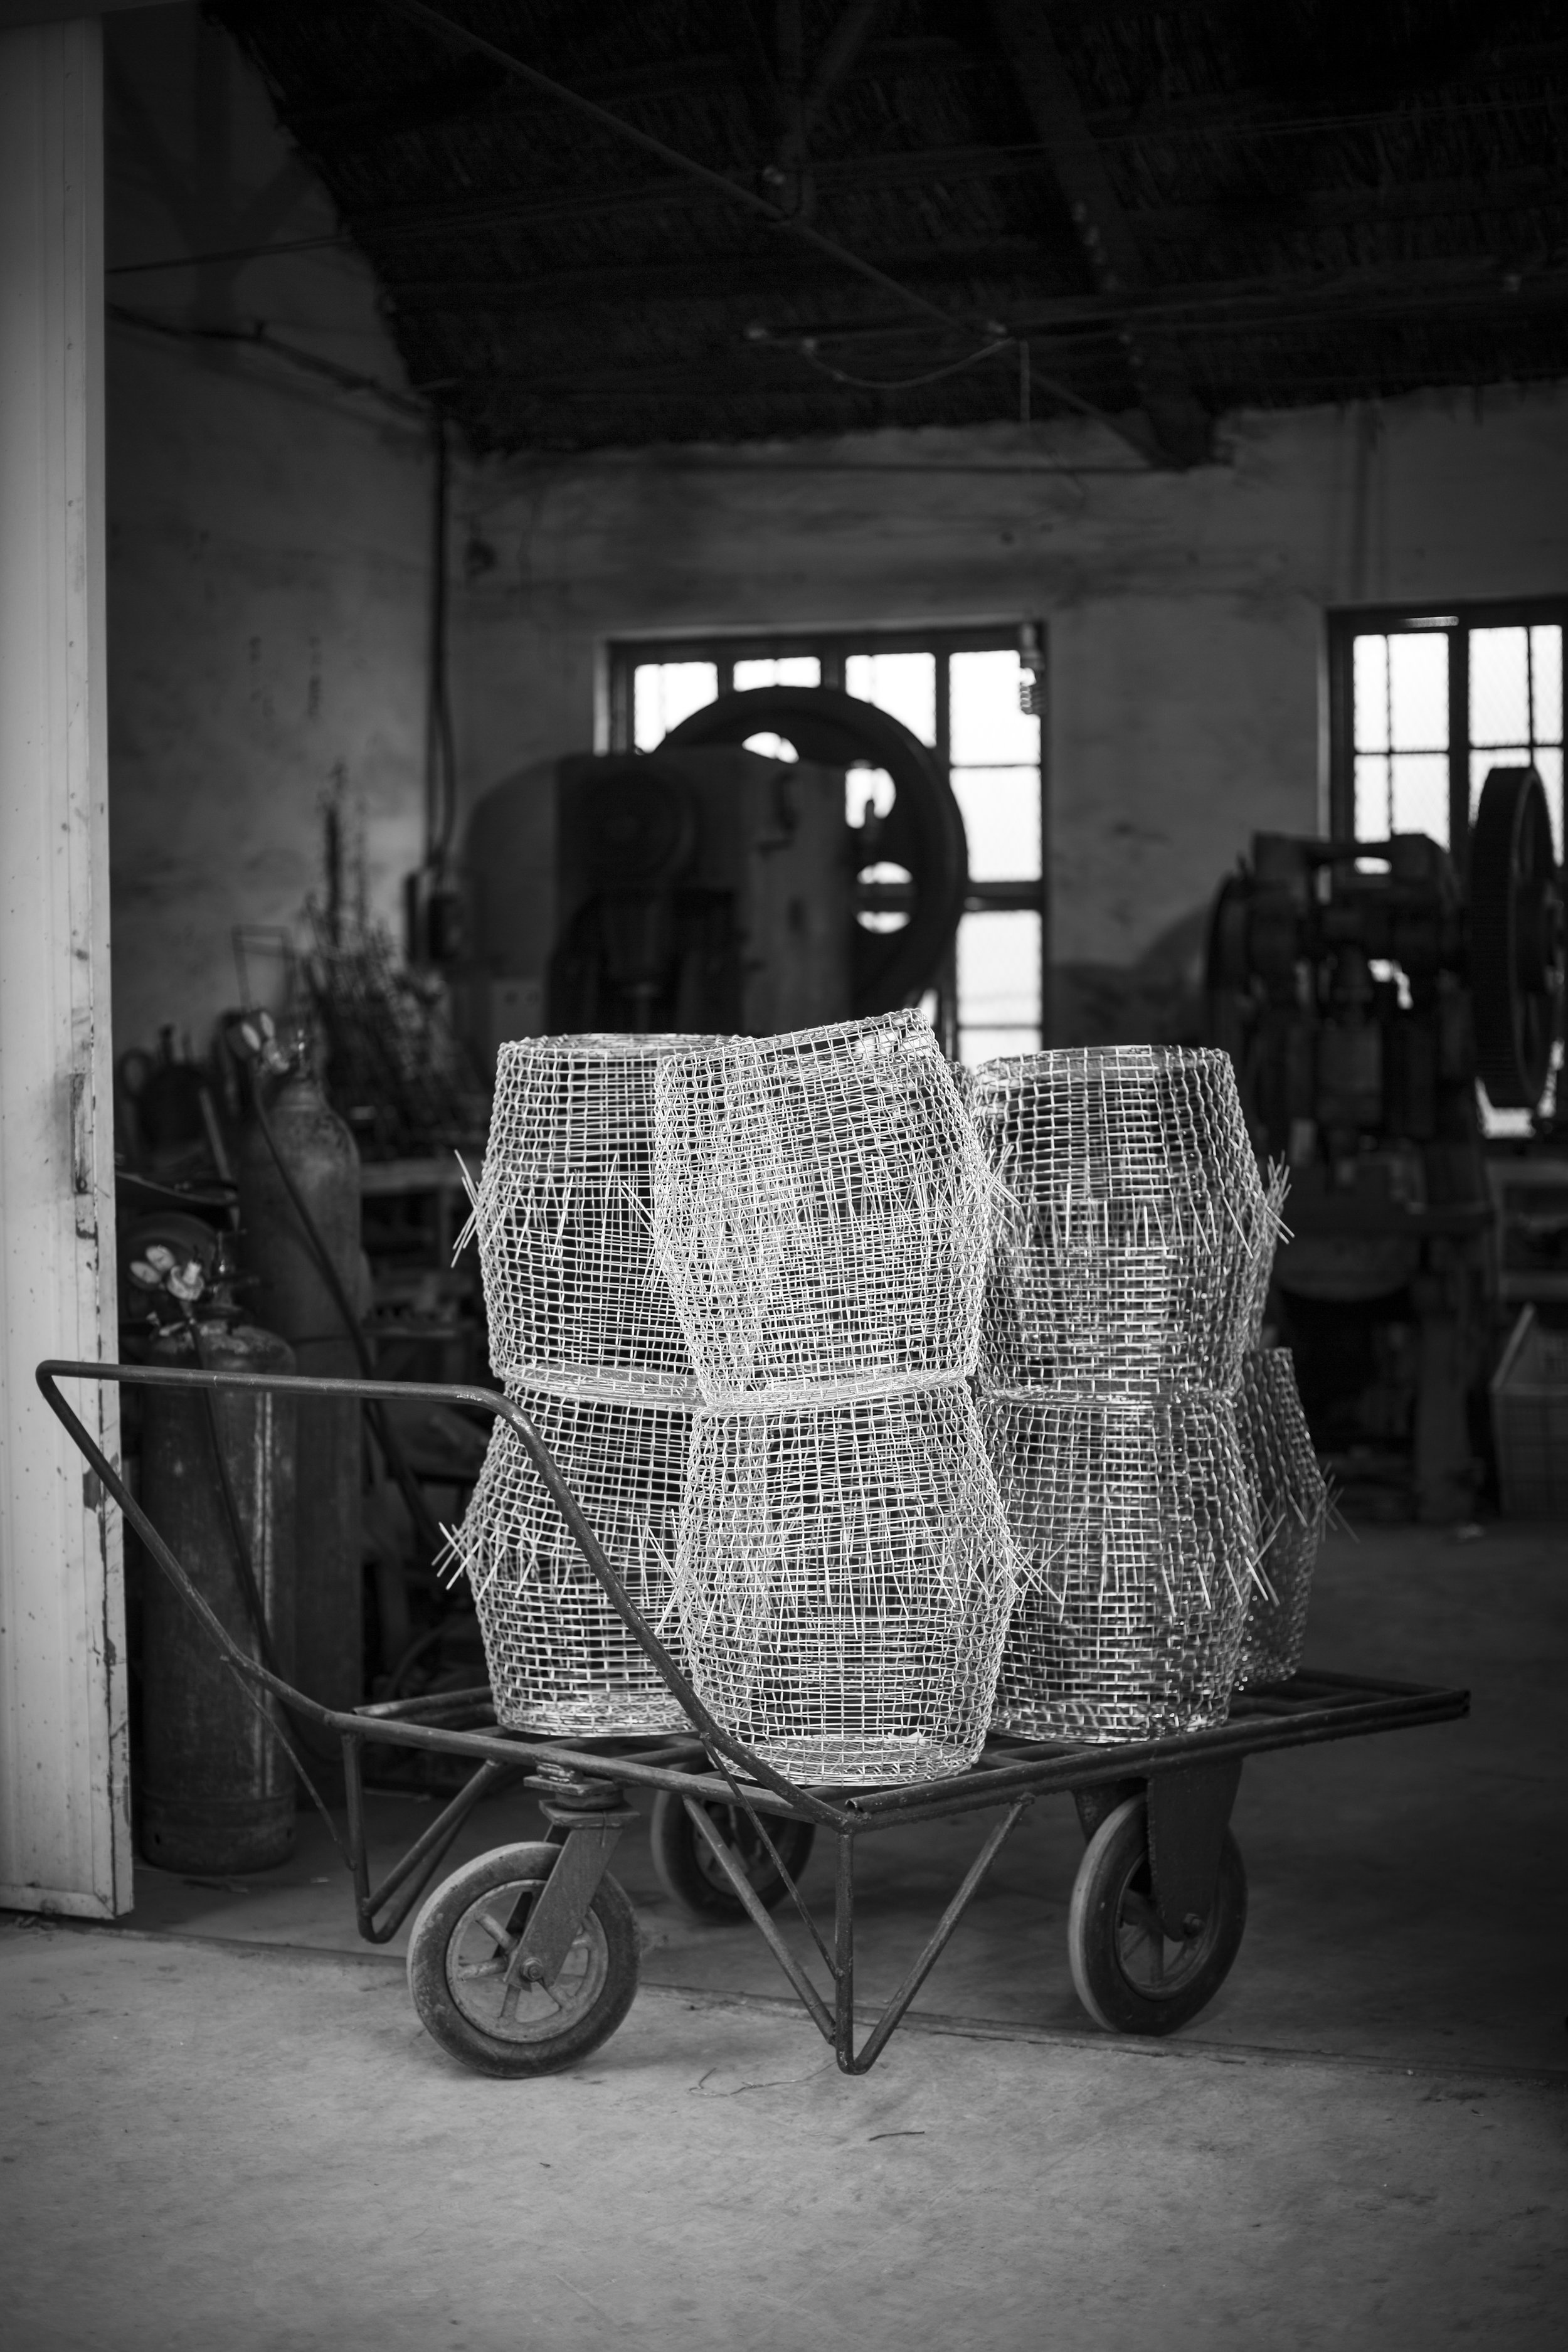 Korbo Classic handwoven baskets in manufacturing